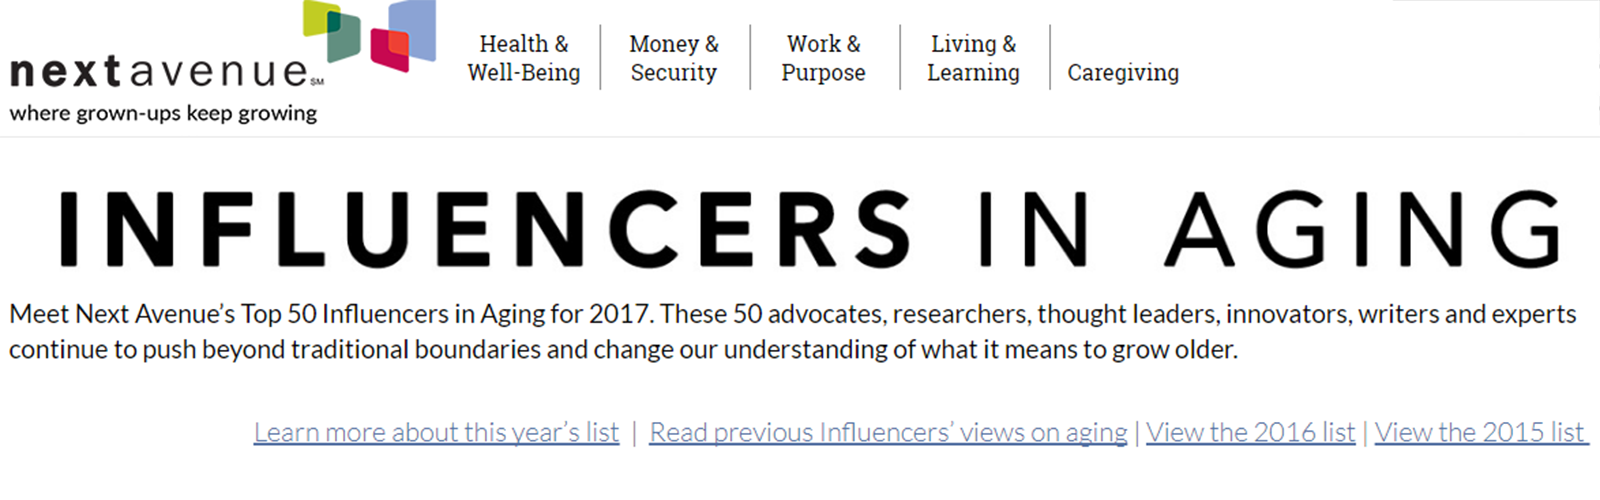 Next Avenue's Influencer in Aging webpage